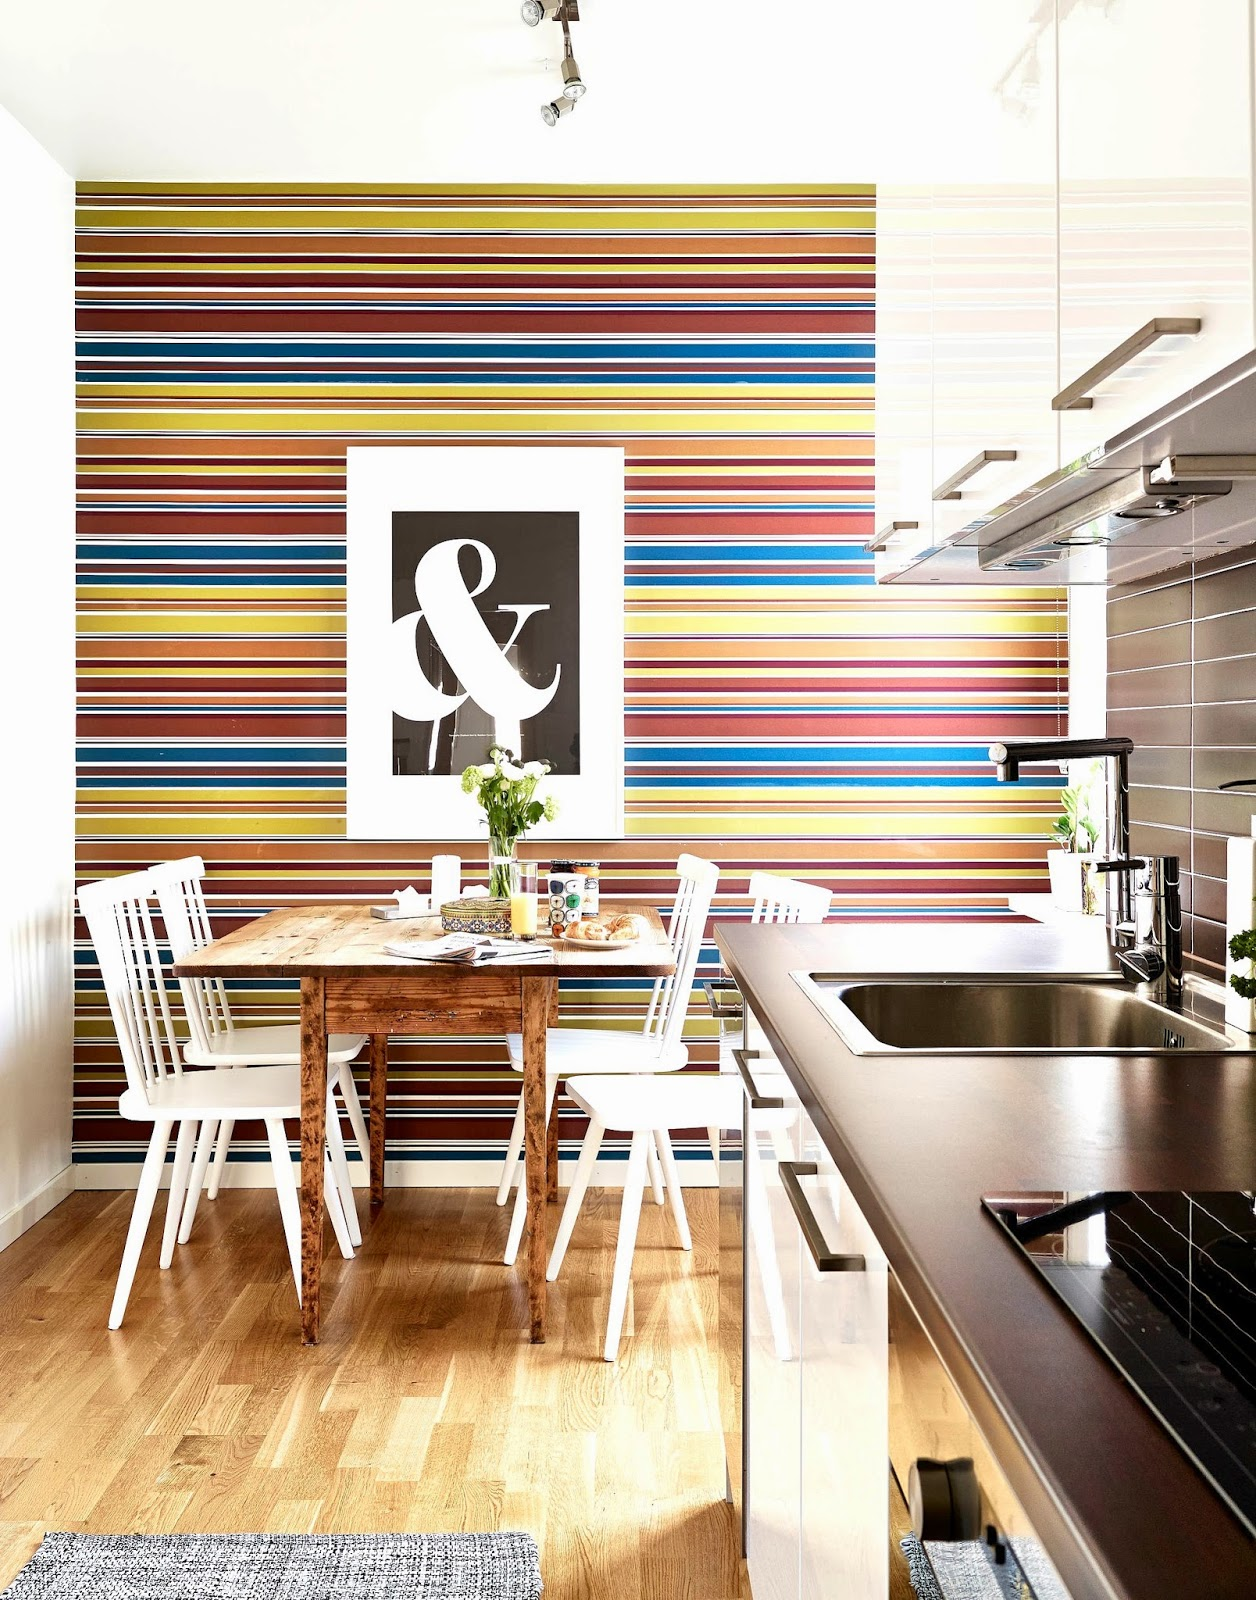 Small kitchen with bold striped feature wall